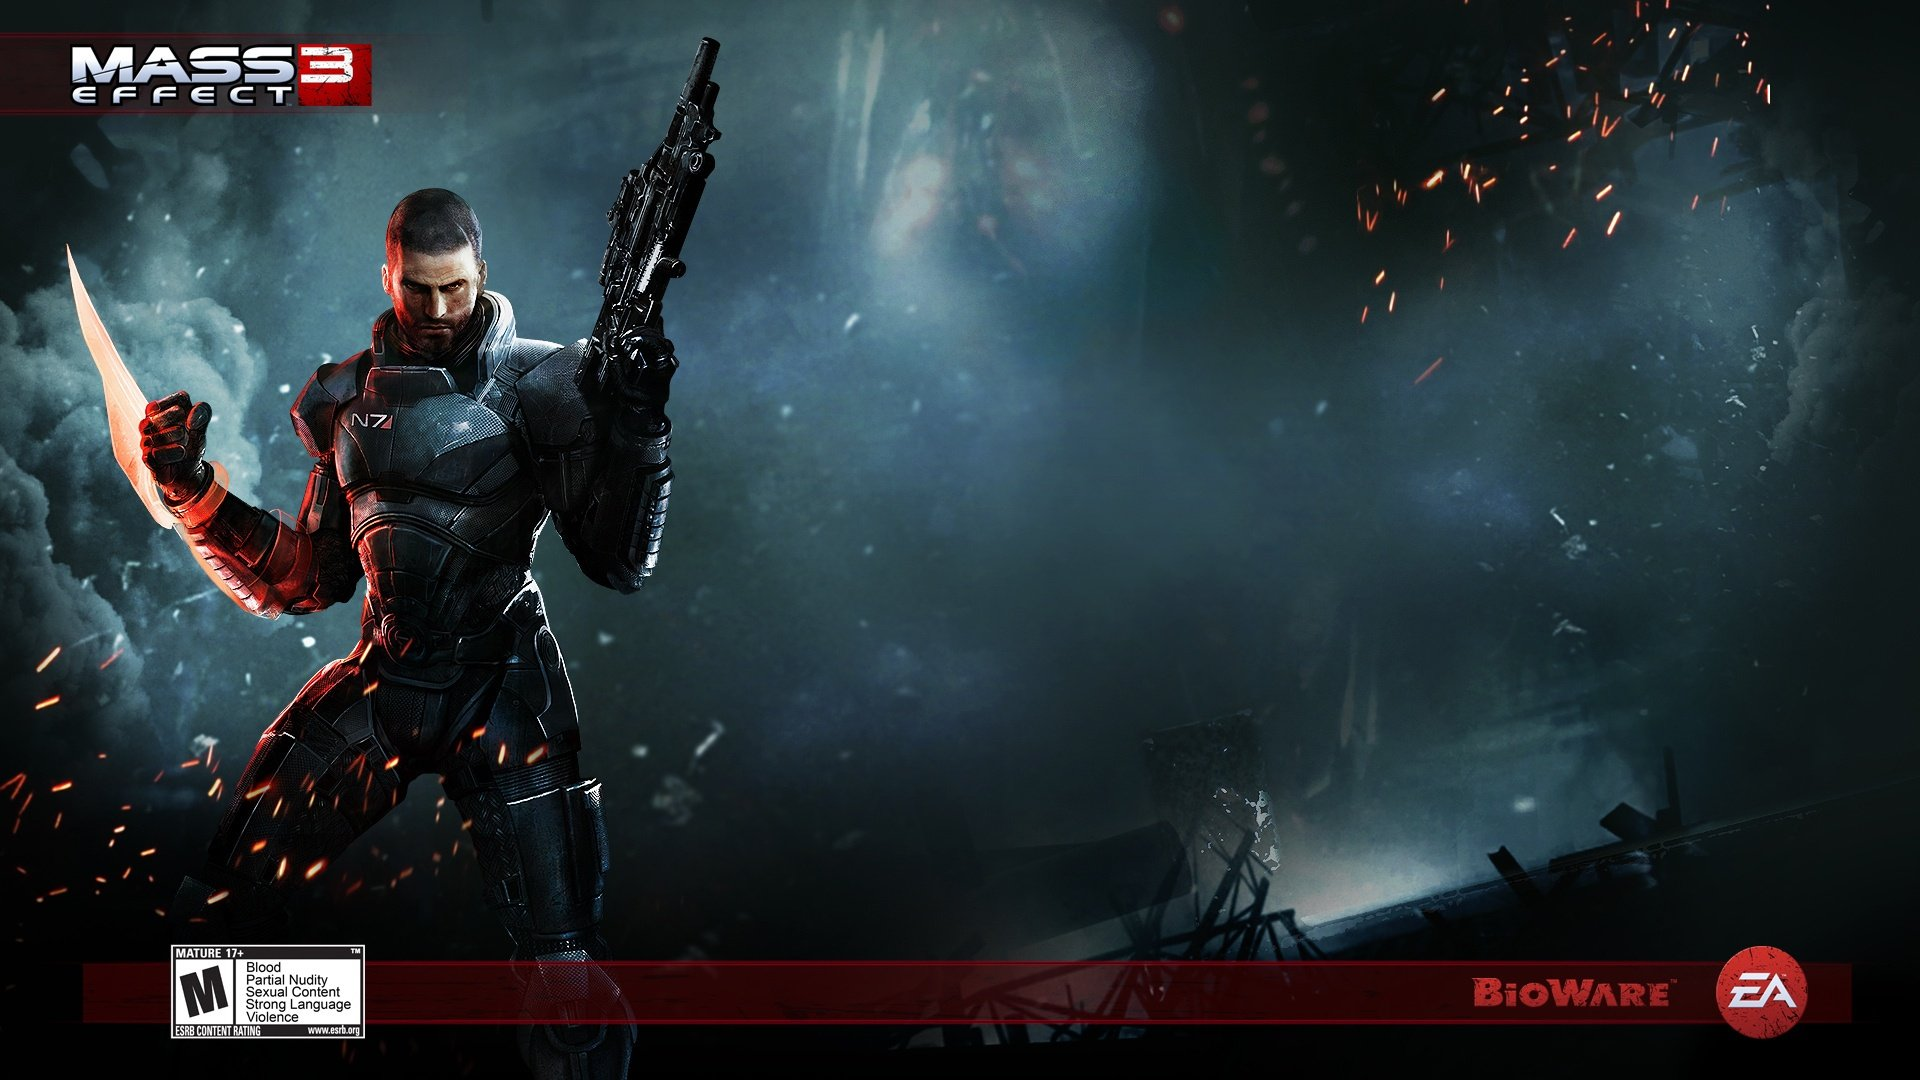 Mass Effect Animated Wallpaper - WallpaperSafari